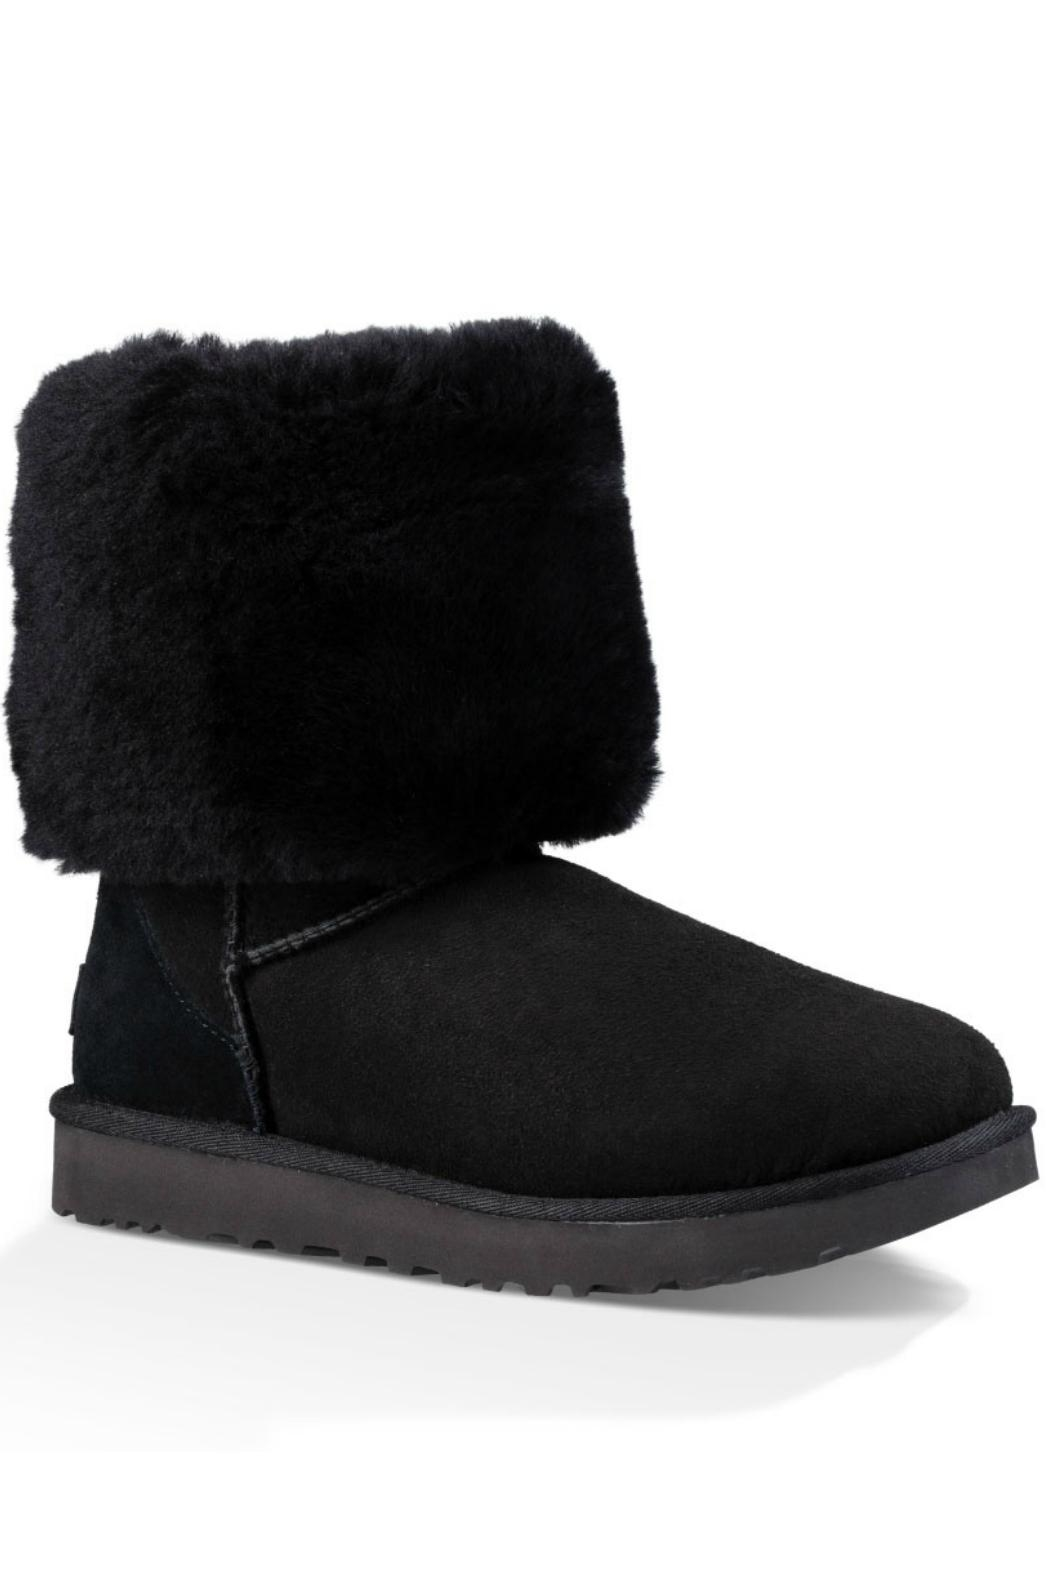 UGG Australia Tall Shearling Black Boot - Front Full Image